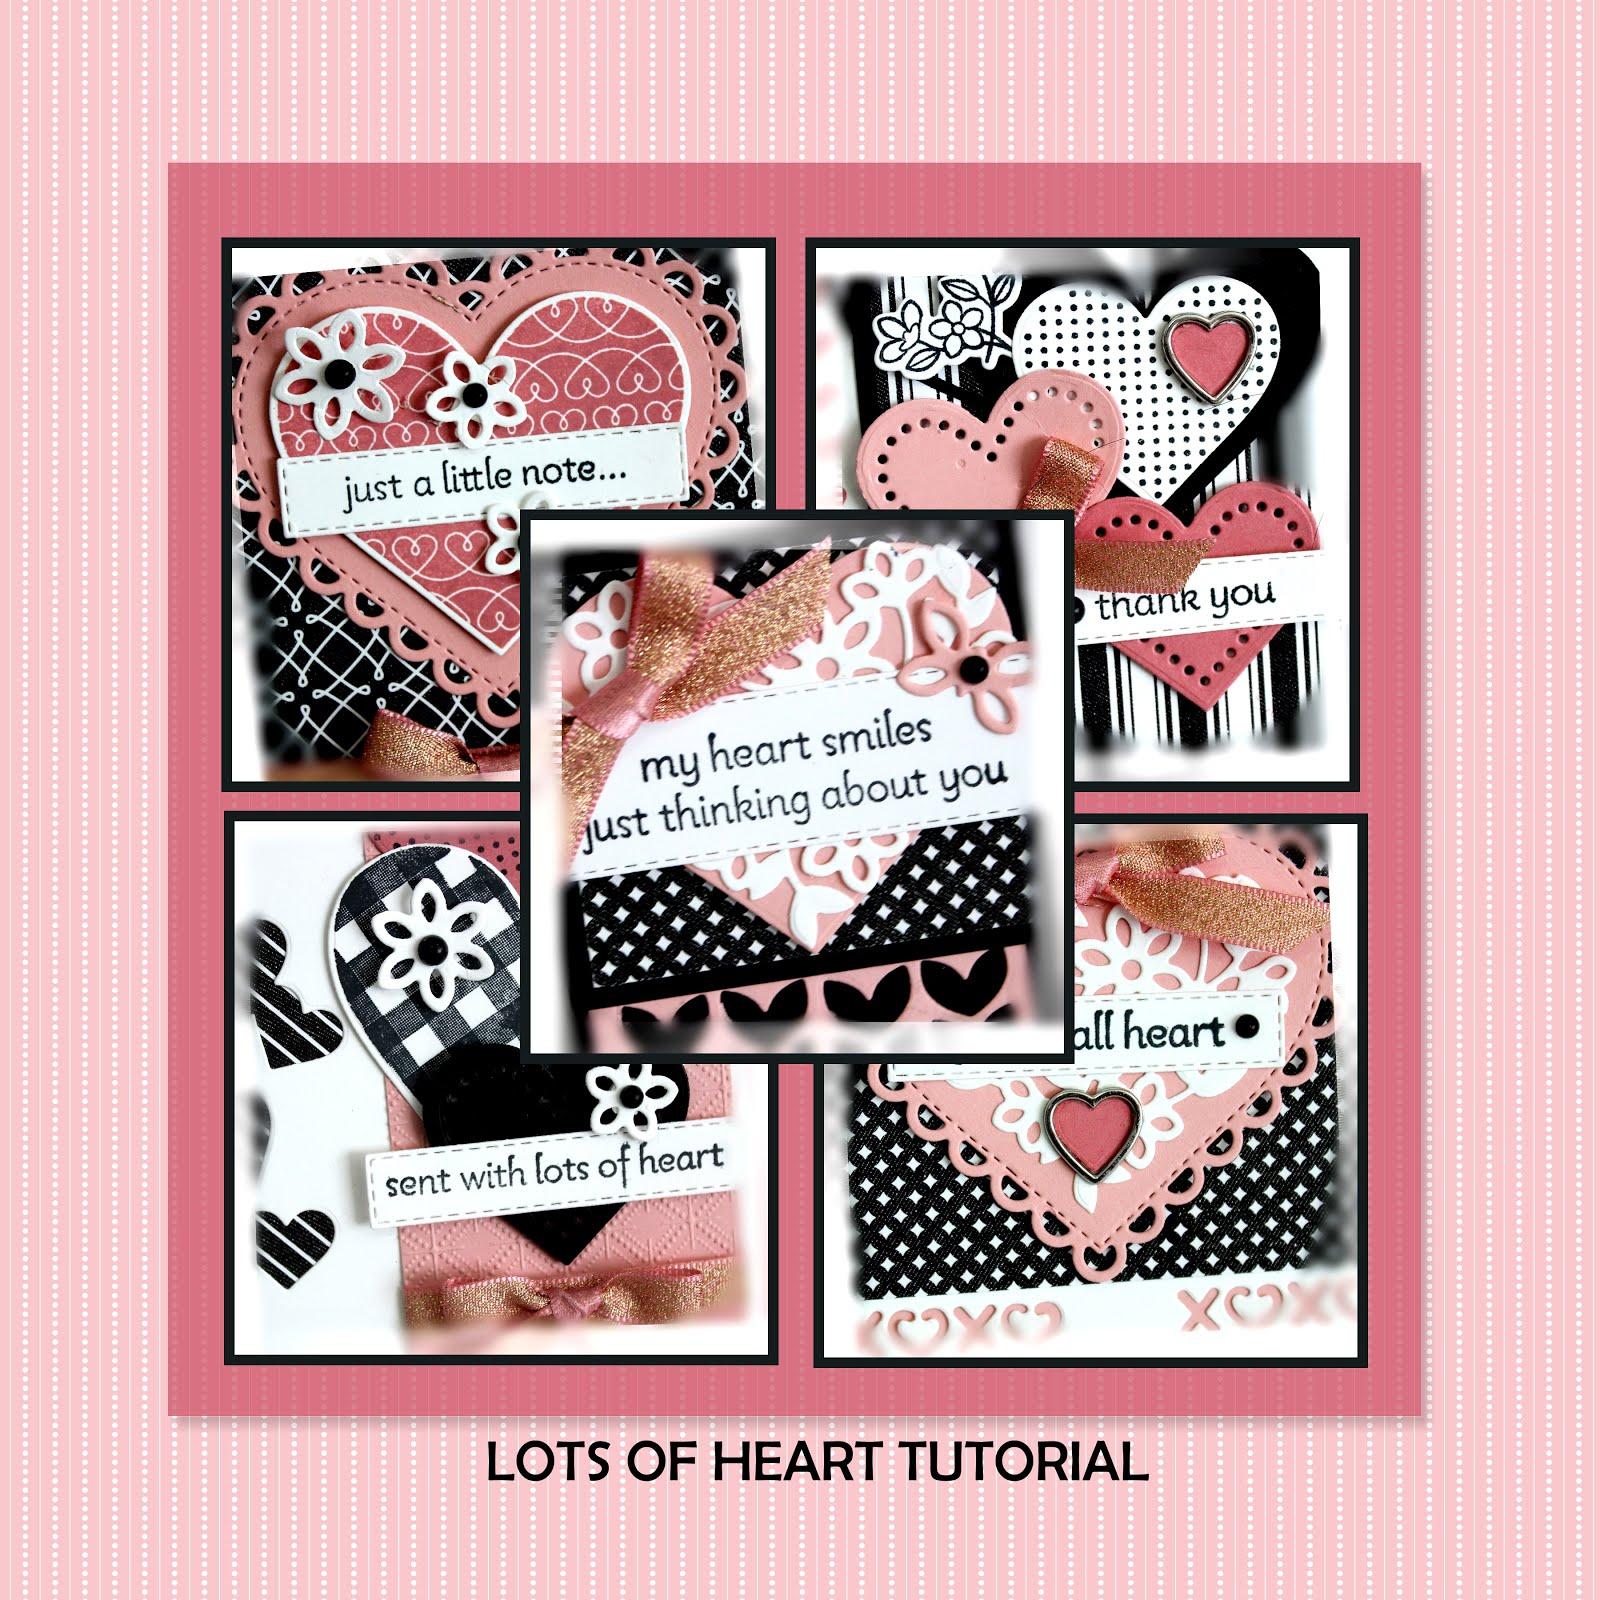 January 2021 Lots of Heart Tutorial